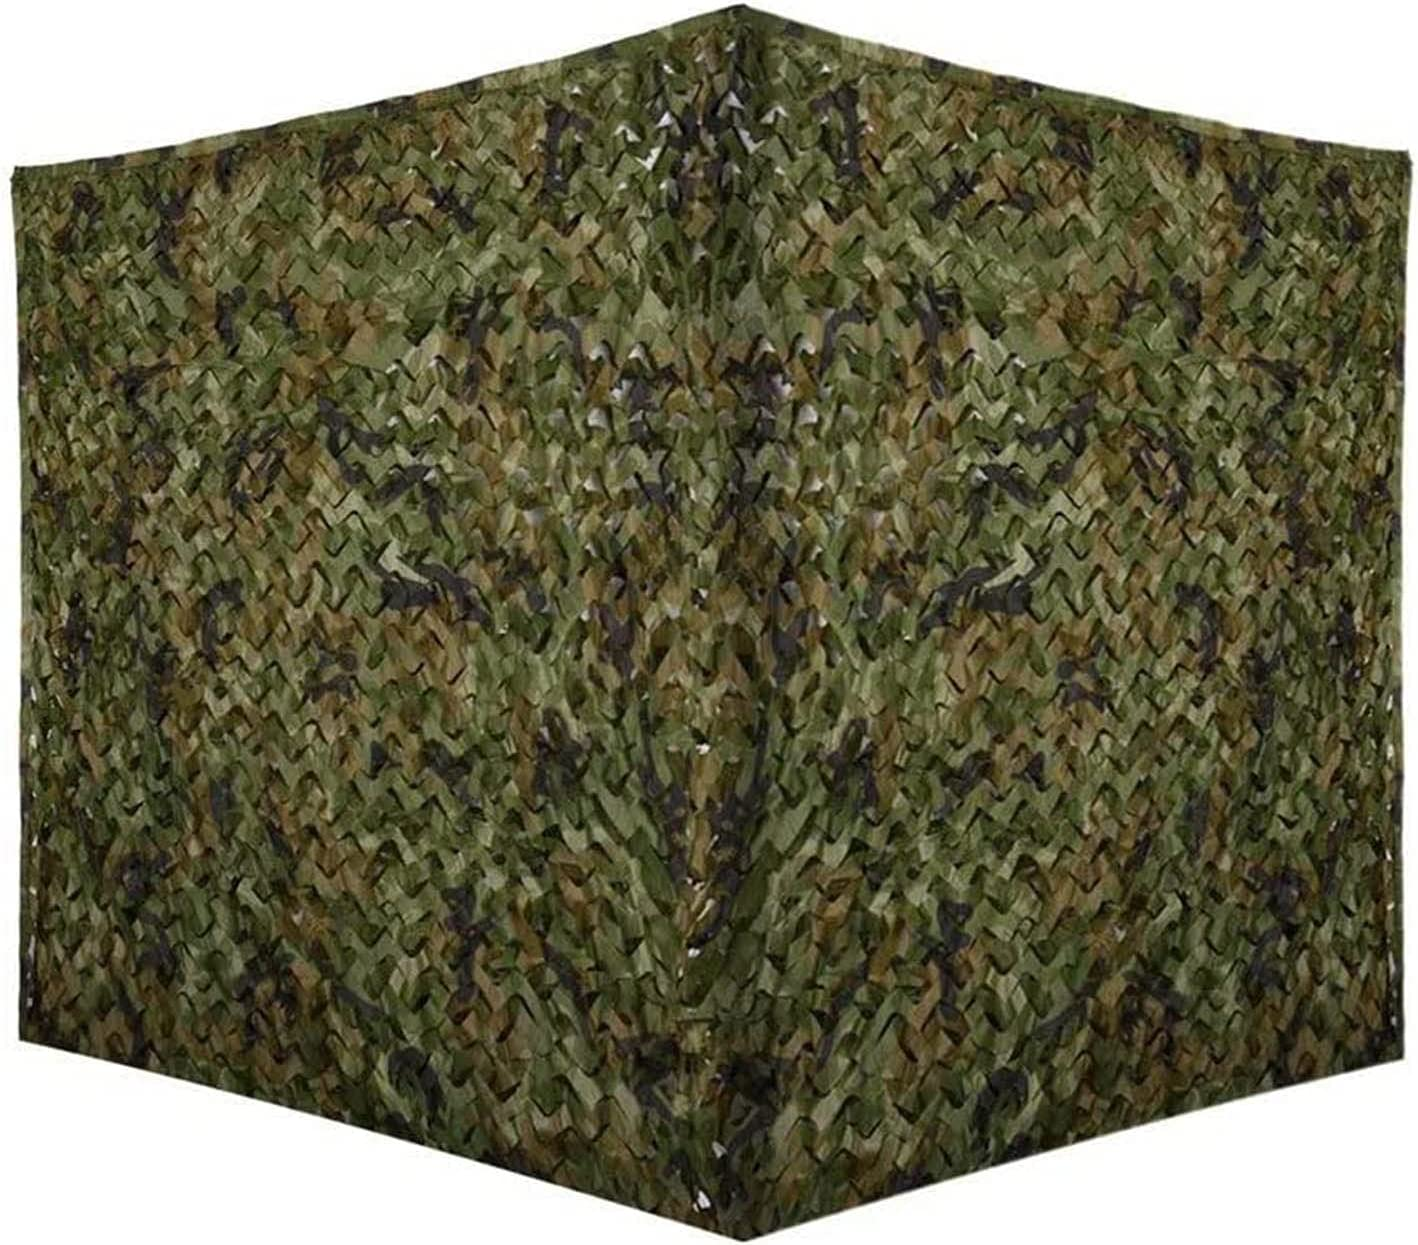 ZCBHSD Woodland Camouflage Max 74% OFF Netting Army Camo for Camping Ou Max 80% OFF Net